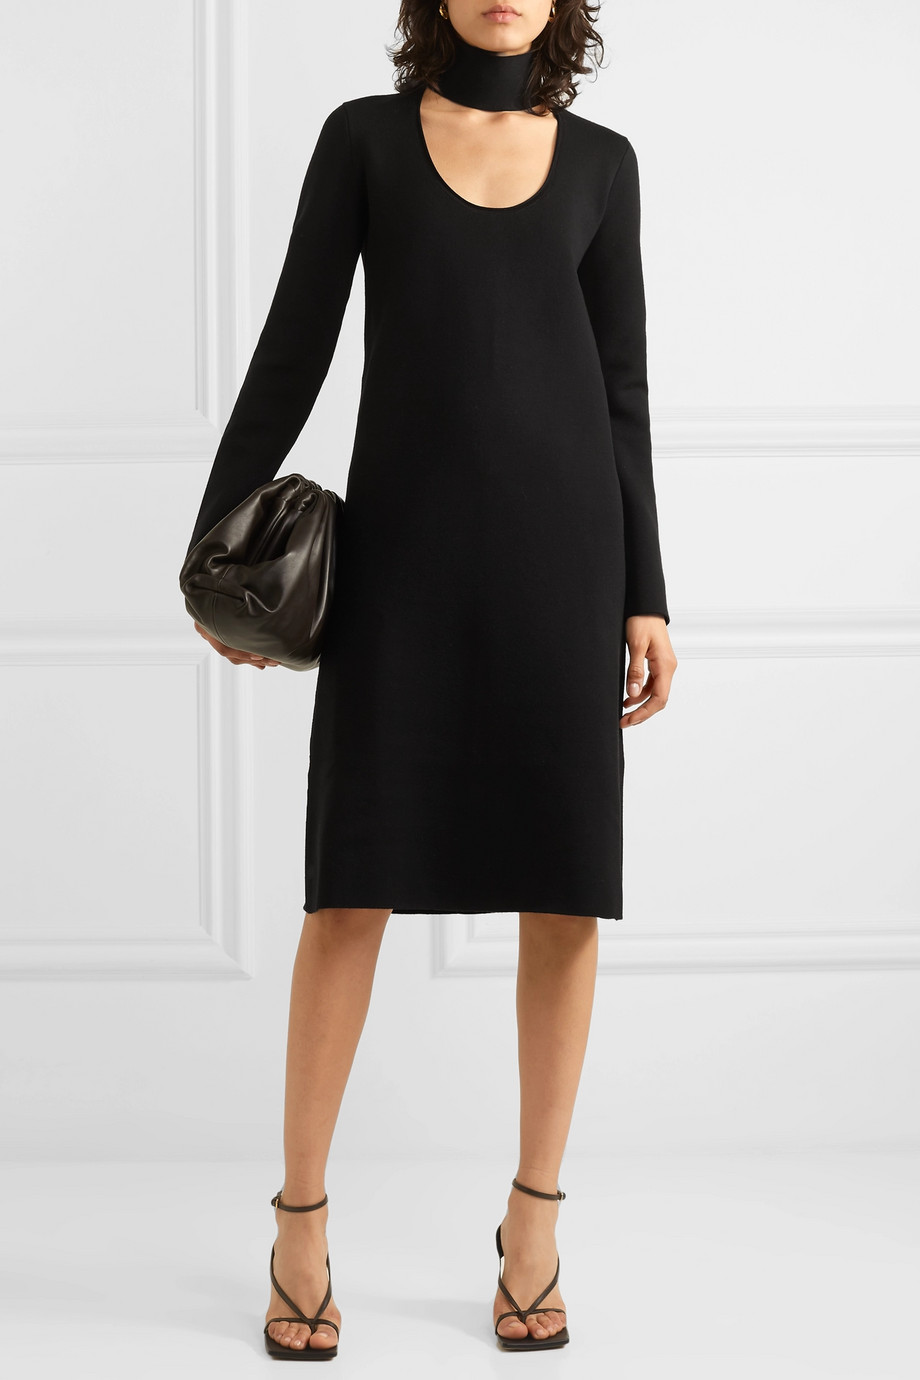 Bottega Veneta Cutout stretch-knit dress